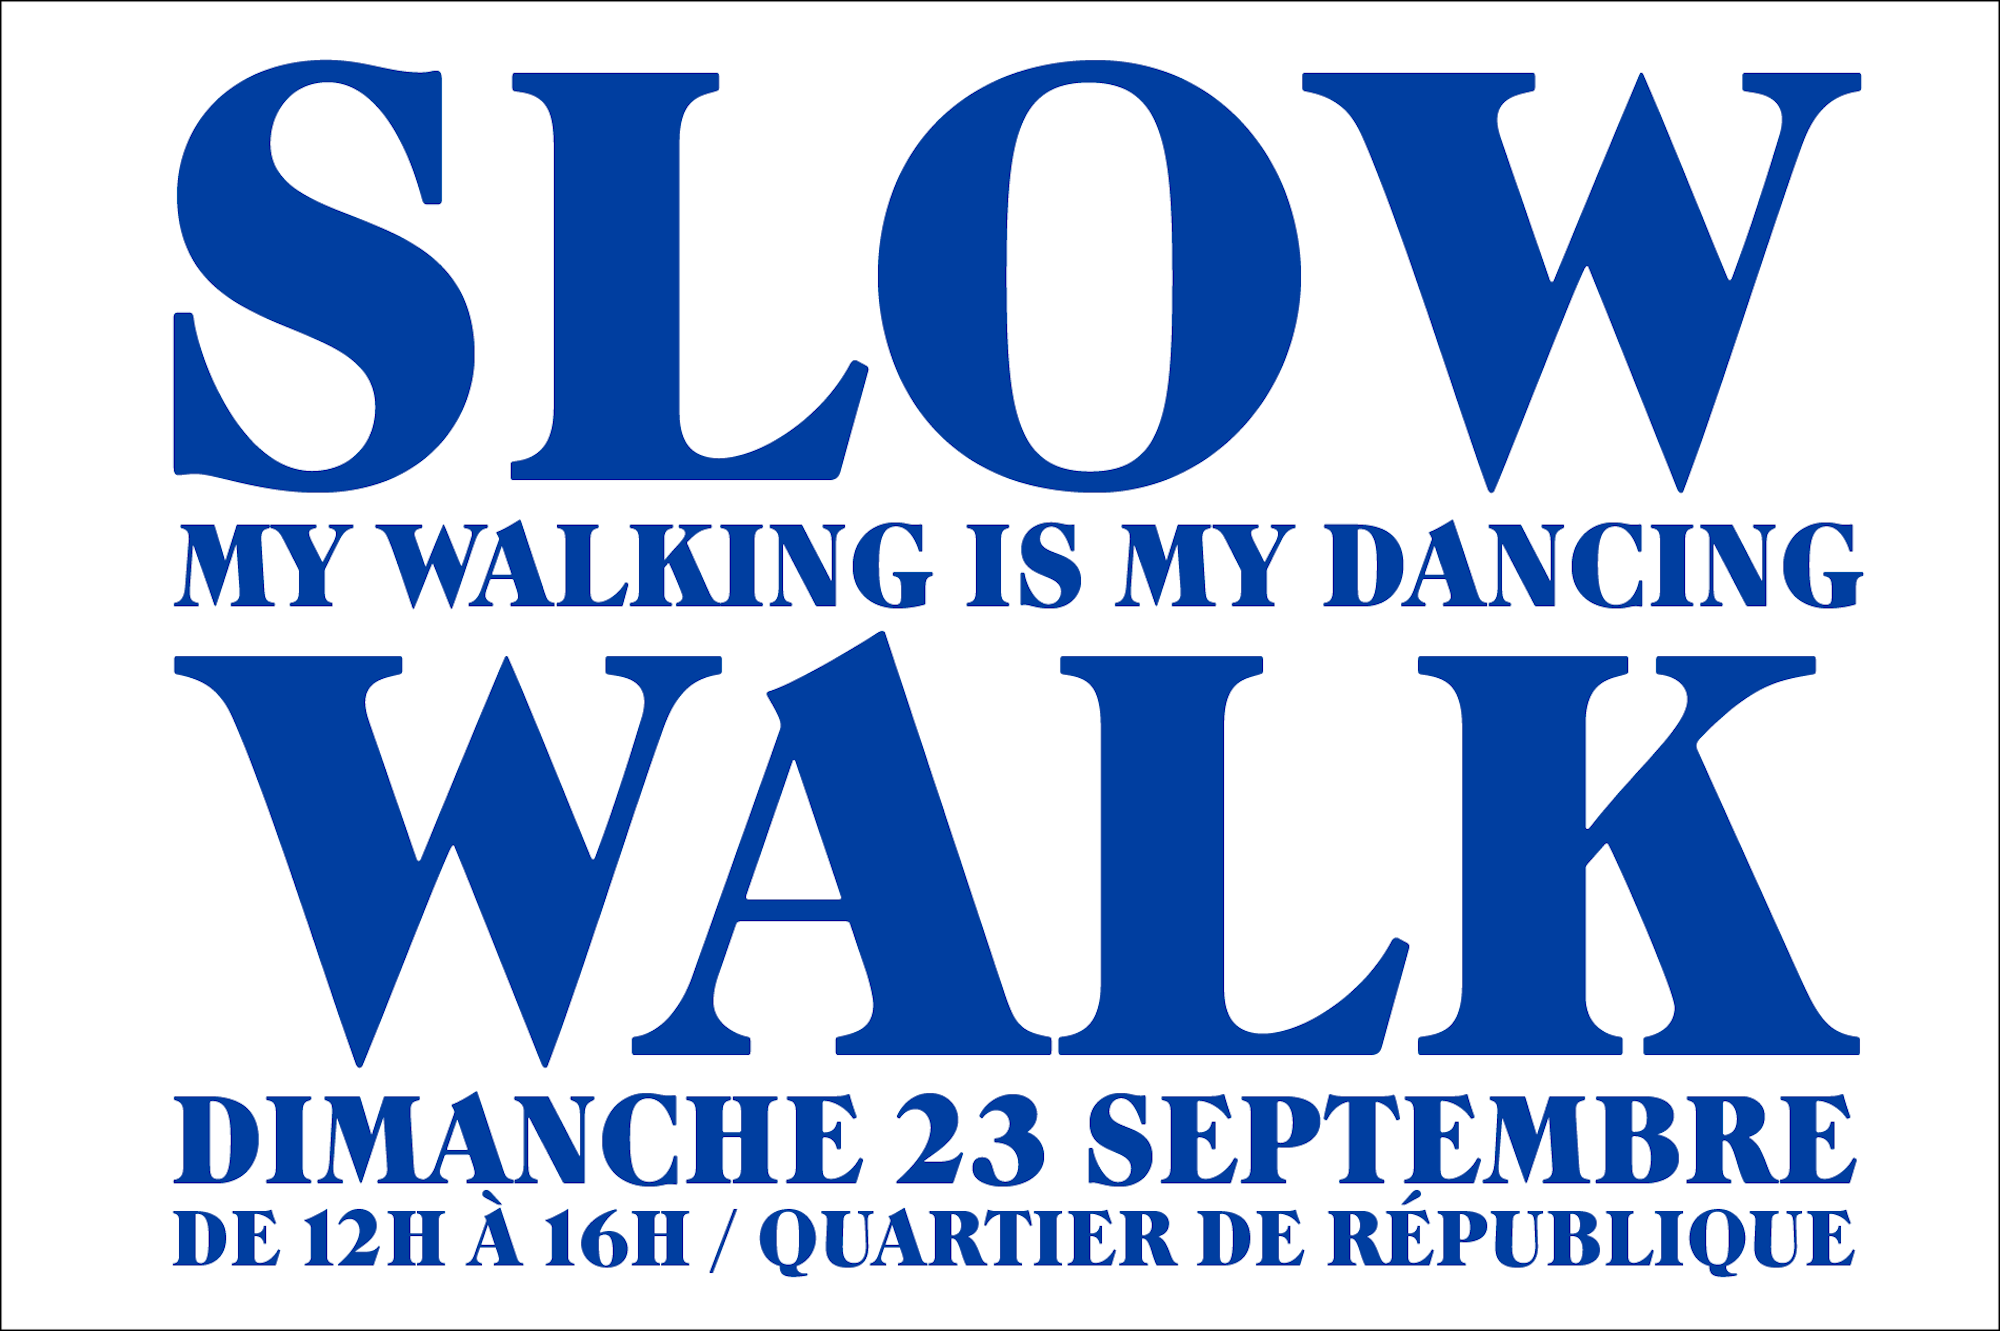 HiP Paris Blog rounds up what's on this September including music and dancing events all over the city like 'Slow Walk' in République.